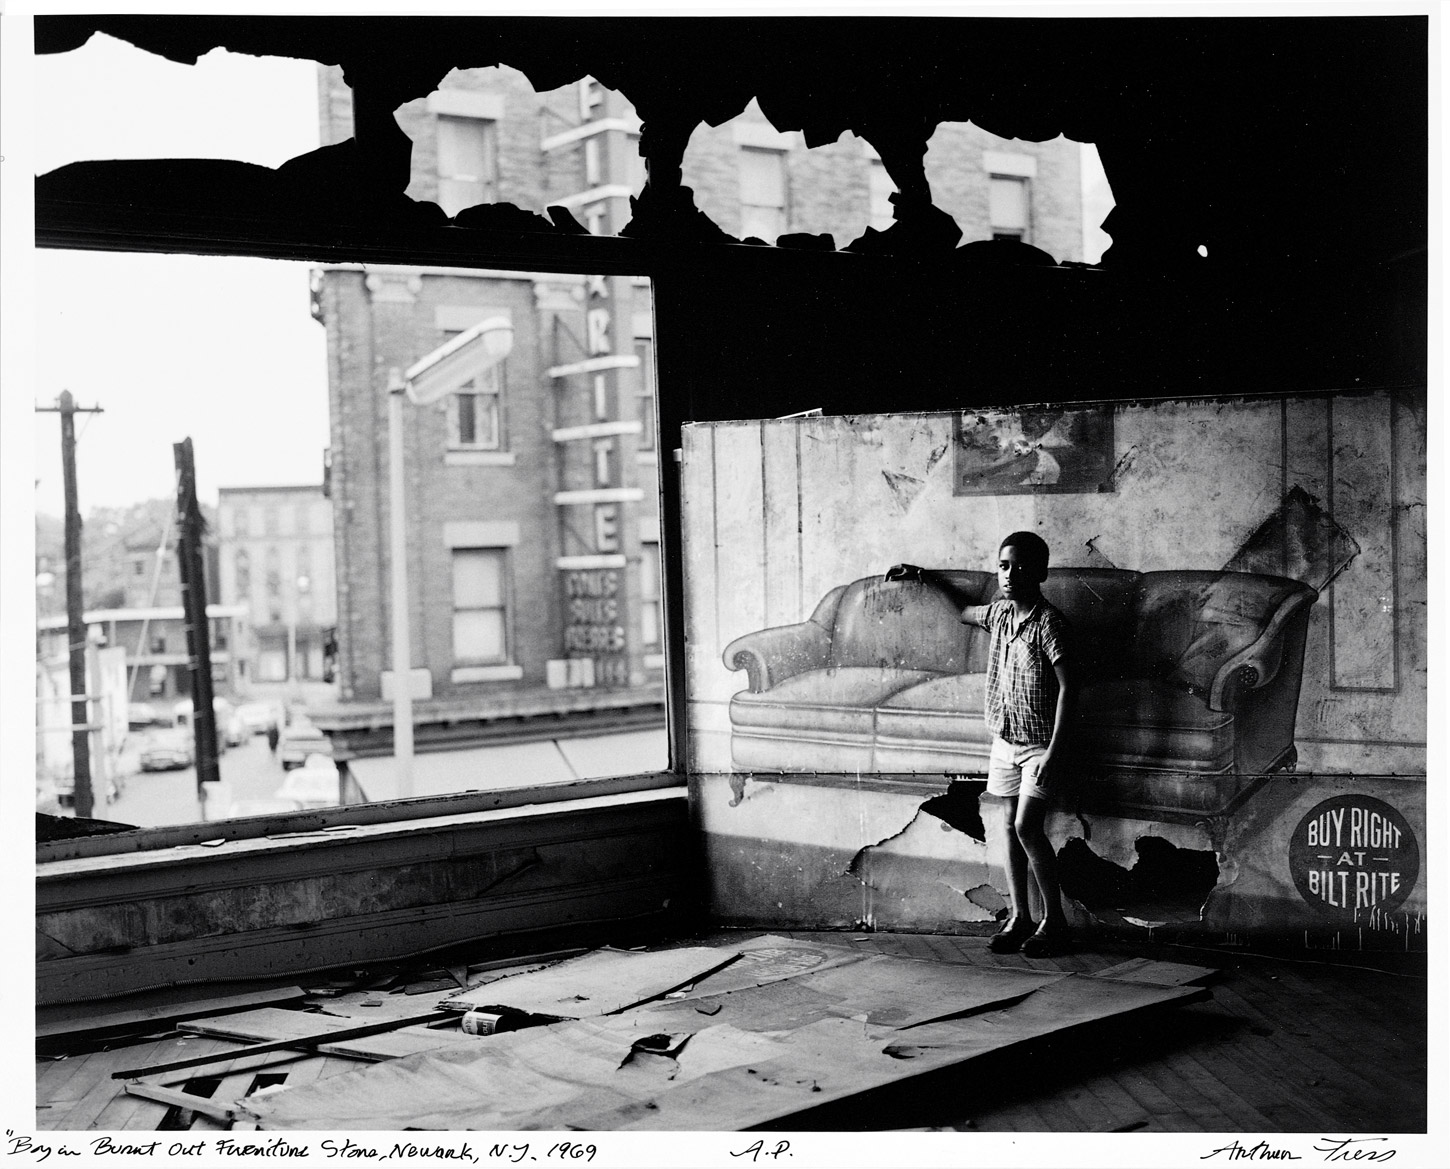 Arthur Tress Boy In Burnt Out Furniture Store